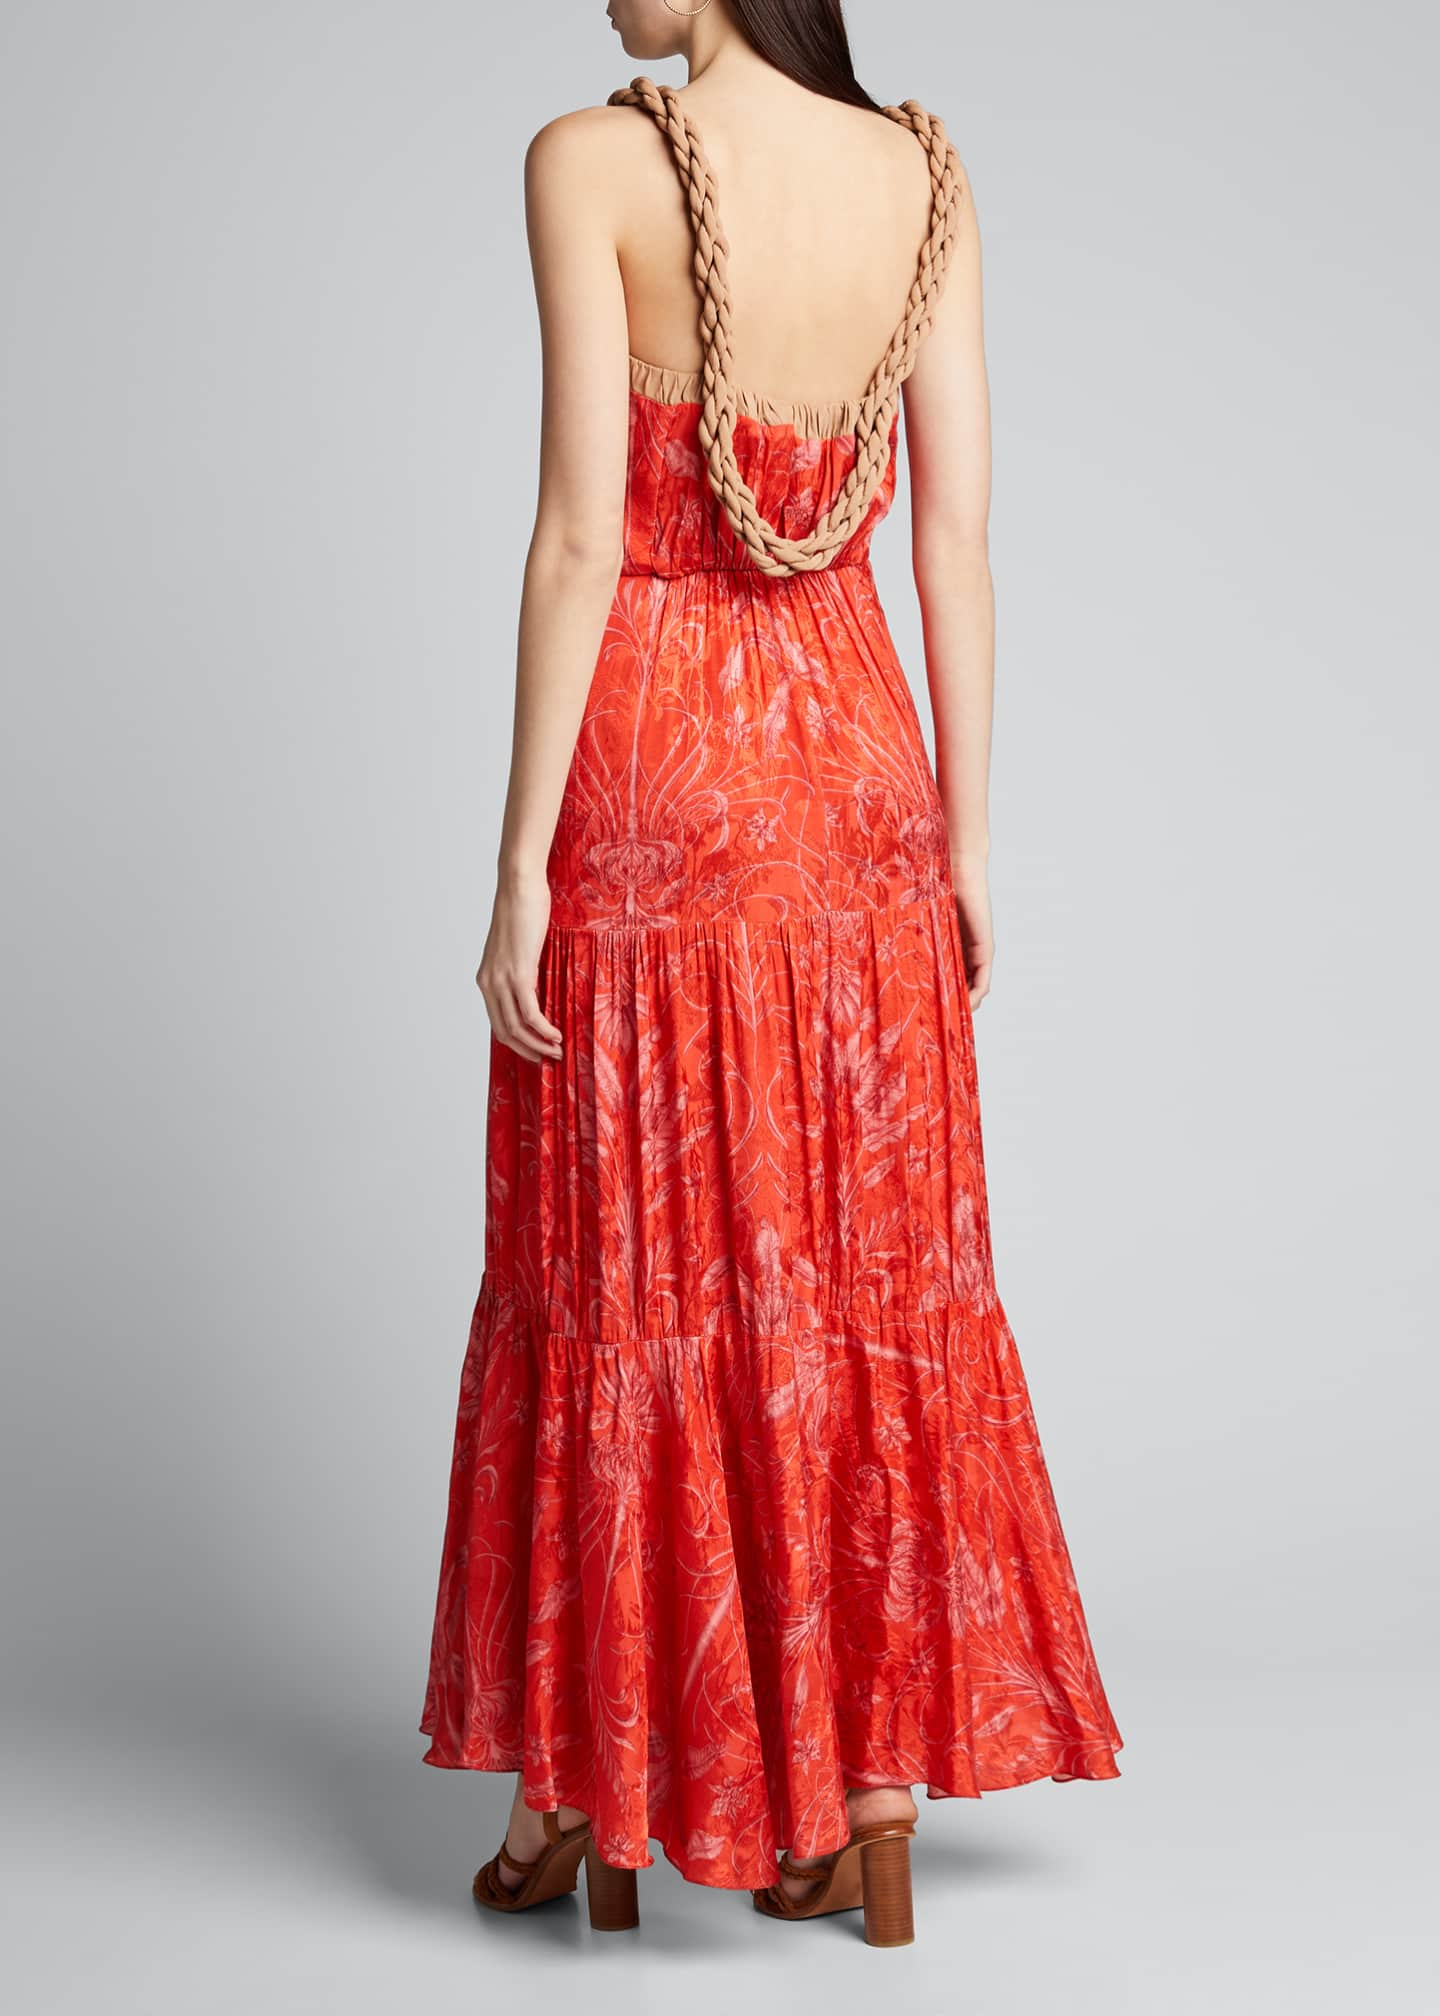 Image 2 of 5: Uncertainty Principles Dress